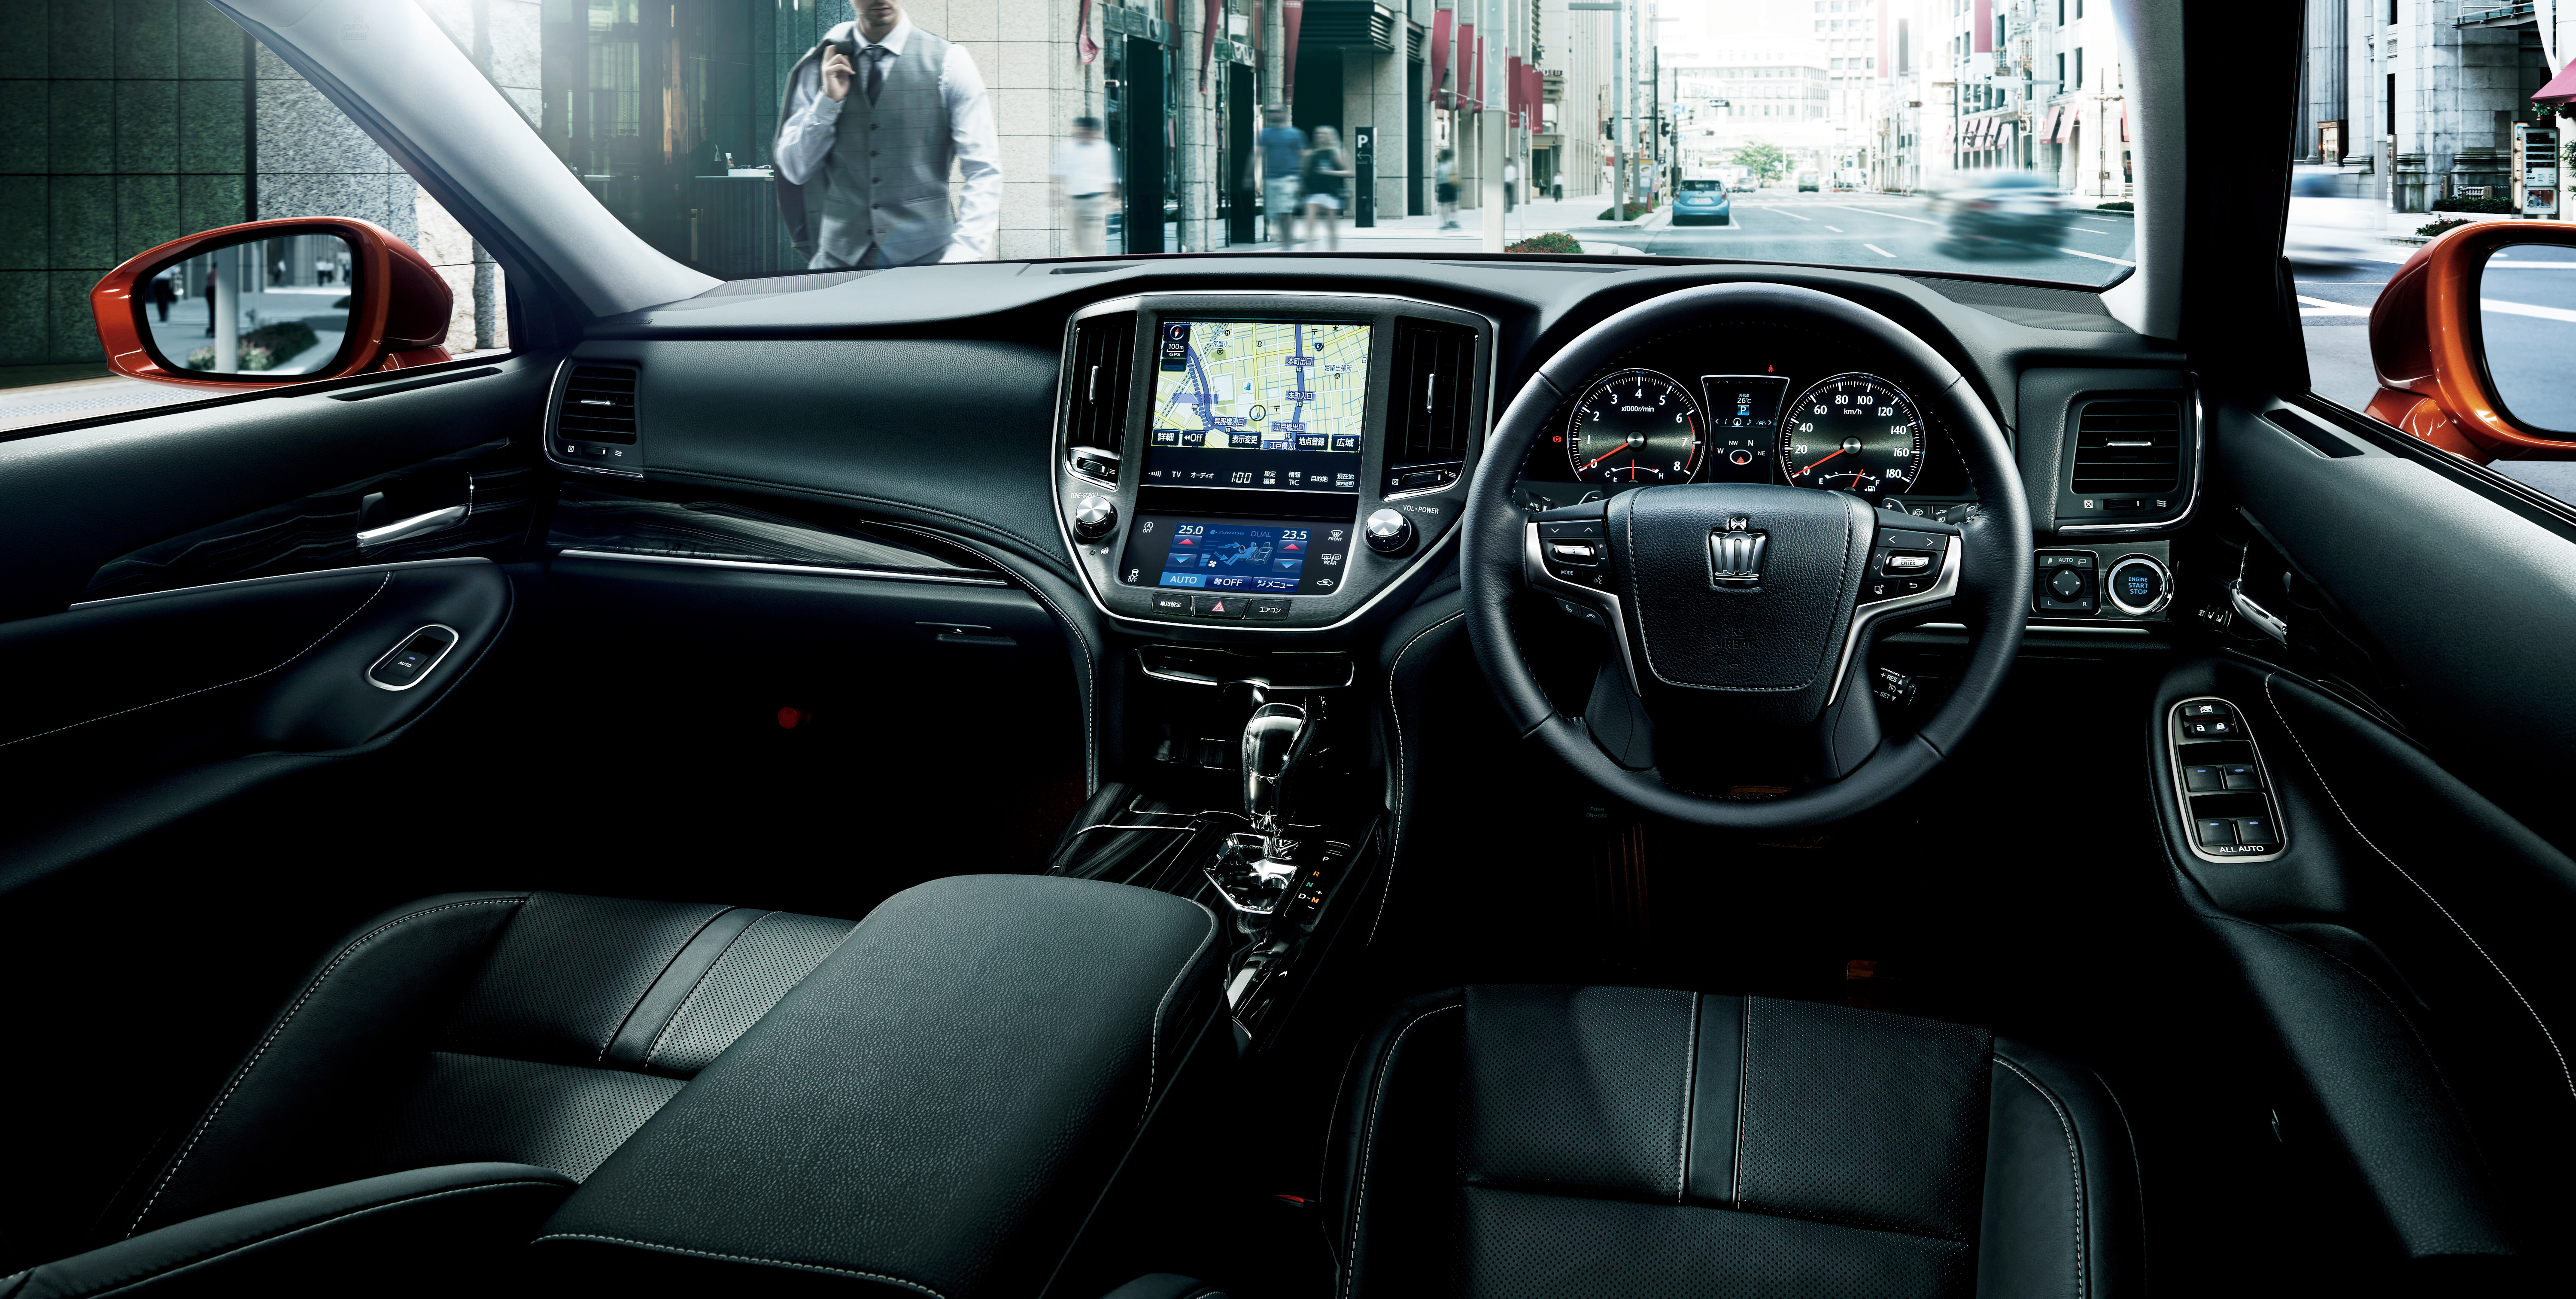 Toyota Crown facelift gets new 2.0 litre turbo engine Paul ...